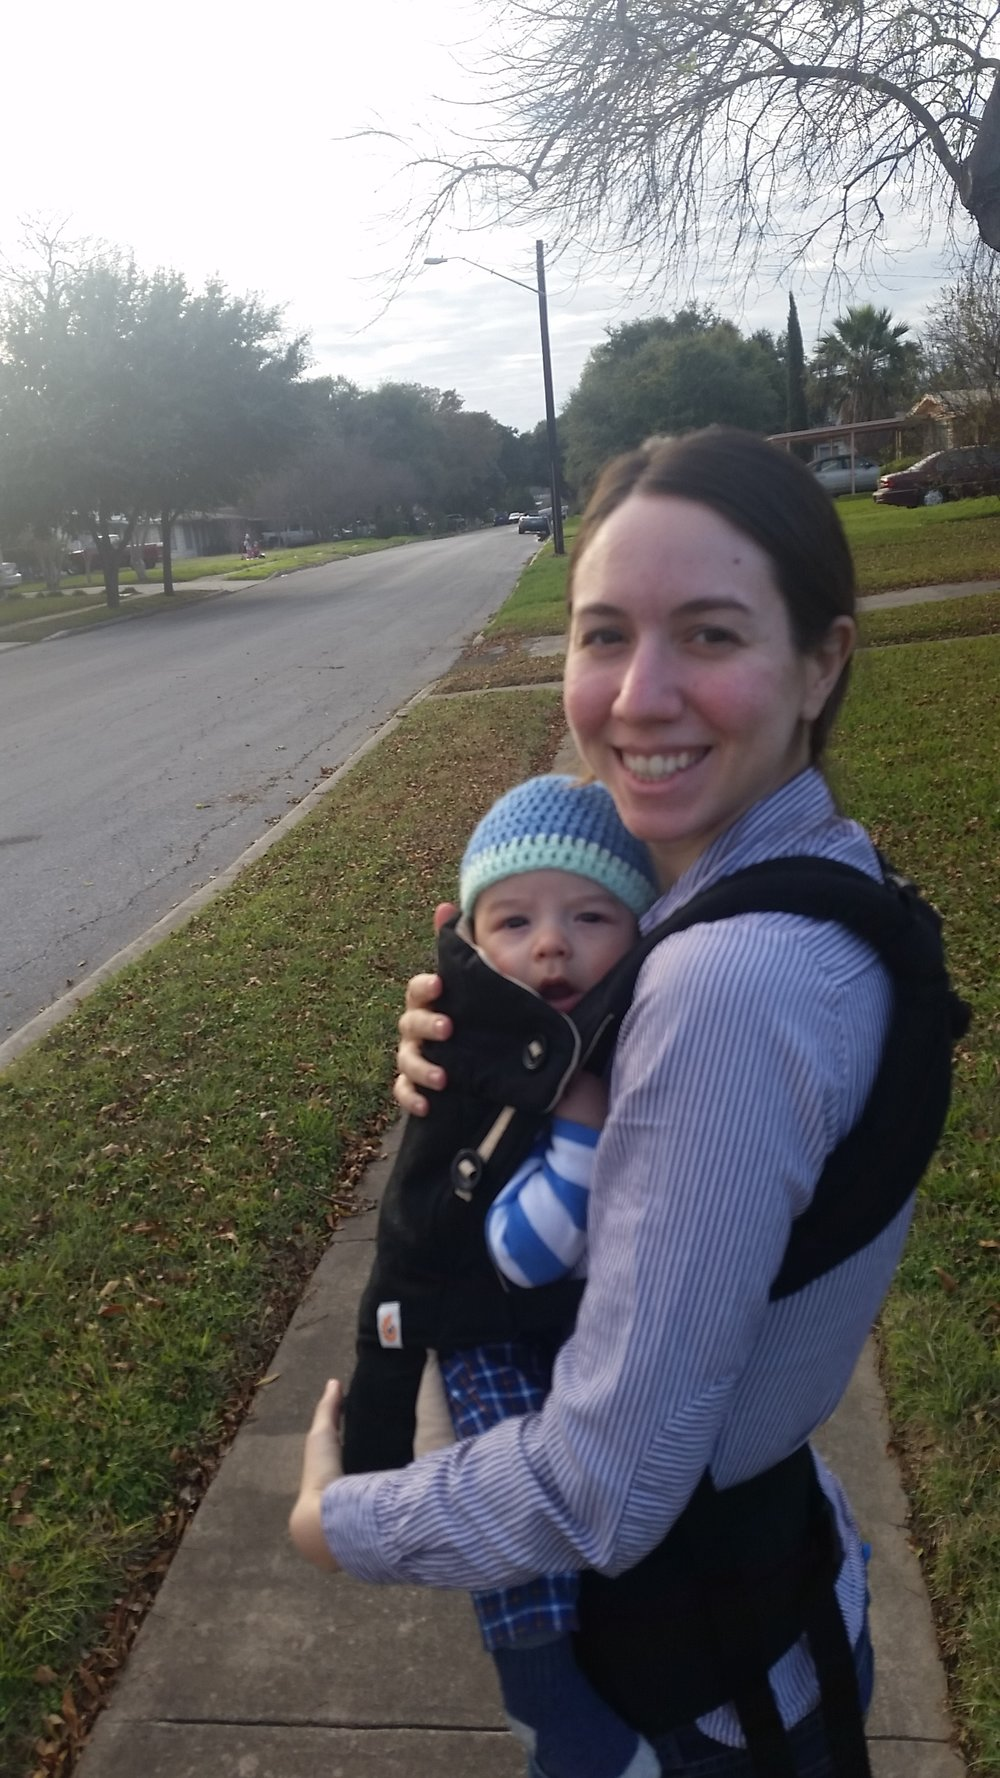 My first walk, post surgery, where I could carry Ezra in his baby carrier. I remember thinking that this was the edgiest thing I'd done in awhile... Ezra's nap was at 5PM and it was 4:30PM when we left for a walk ~so wild~